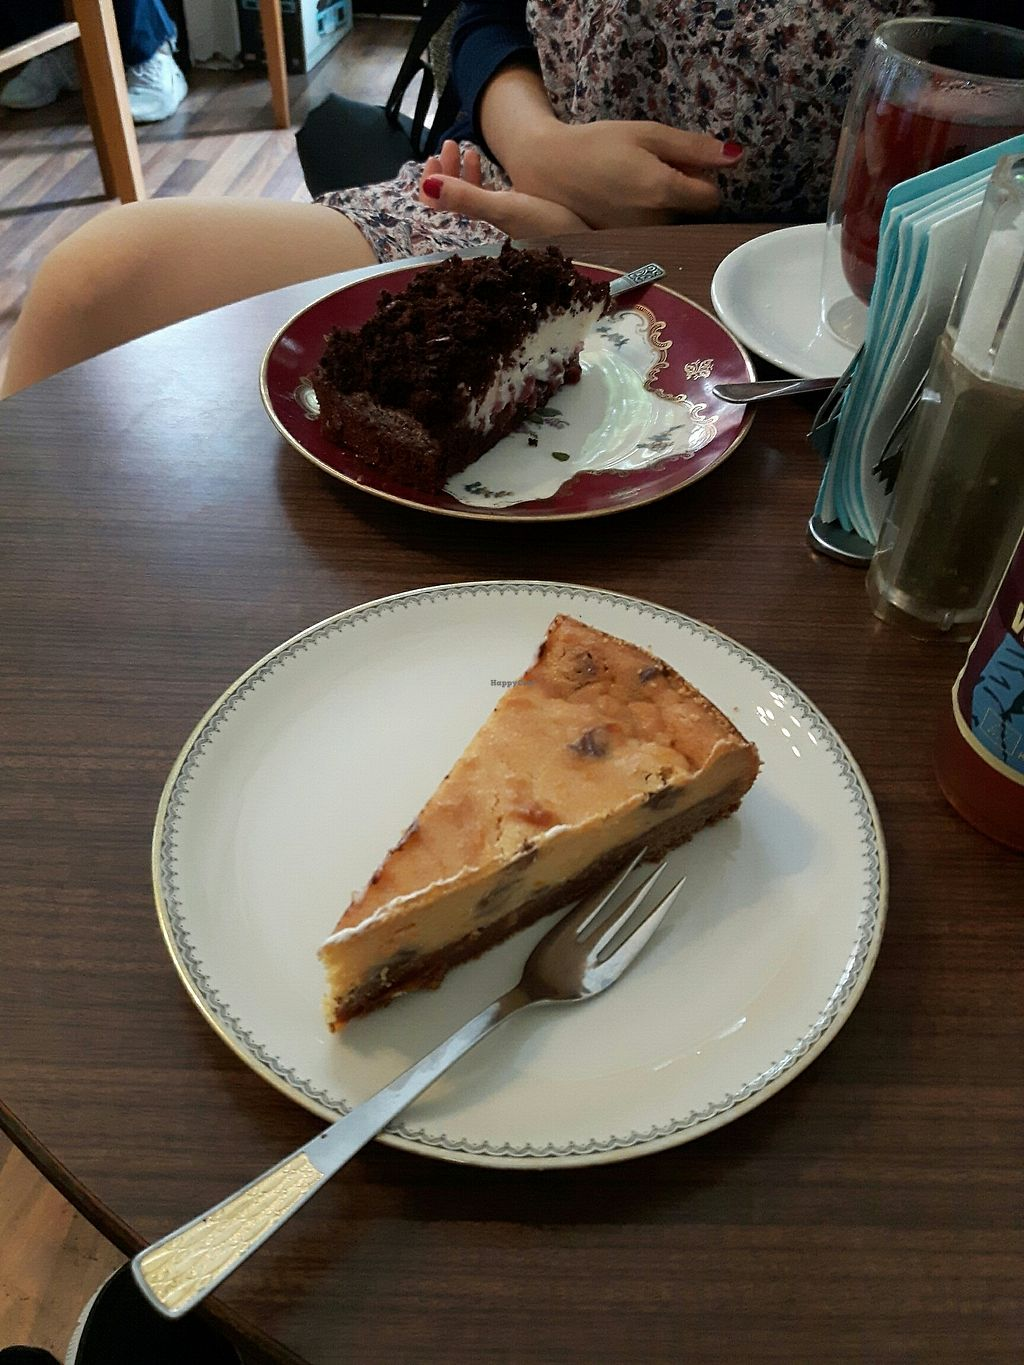 """Photo of Cafe Hibiskus  by <a href=""""/members/profile/MichailK"""">MichailK</a> <br/>Some cake <br/> August 8, 2017  - <a href='/contact/abuse/image/43348/290506'>Report</a>"""